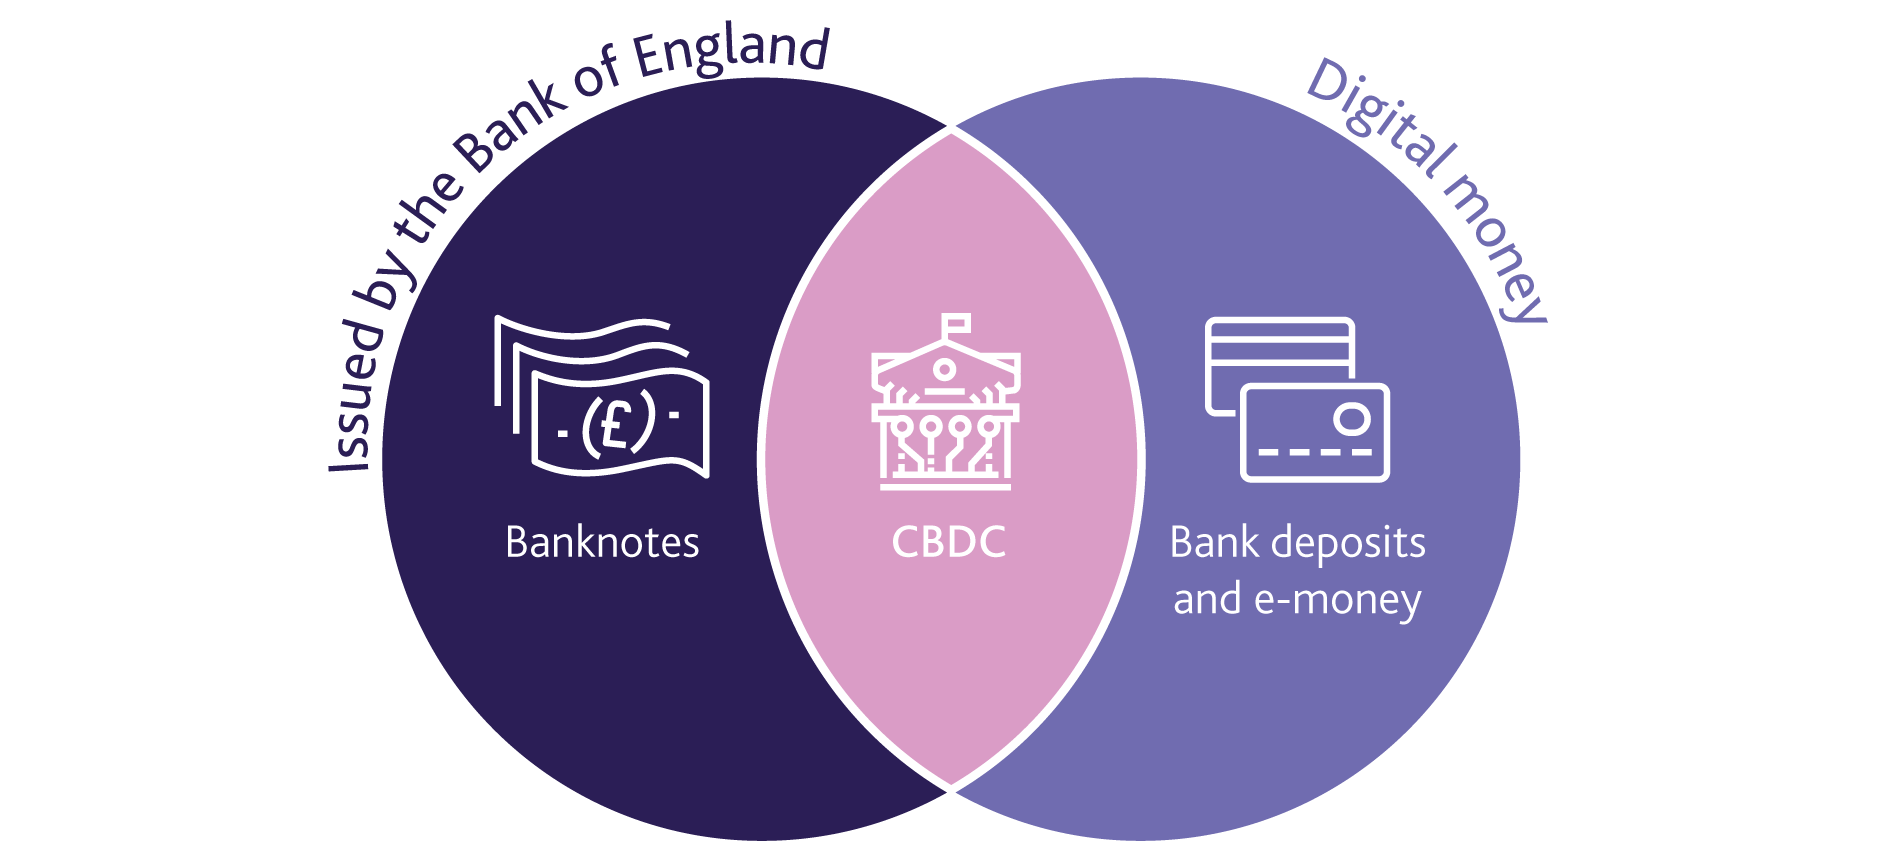 BoE CBDC - Bank of England mulling new digital currency post-Brexit